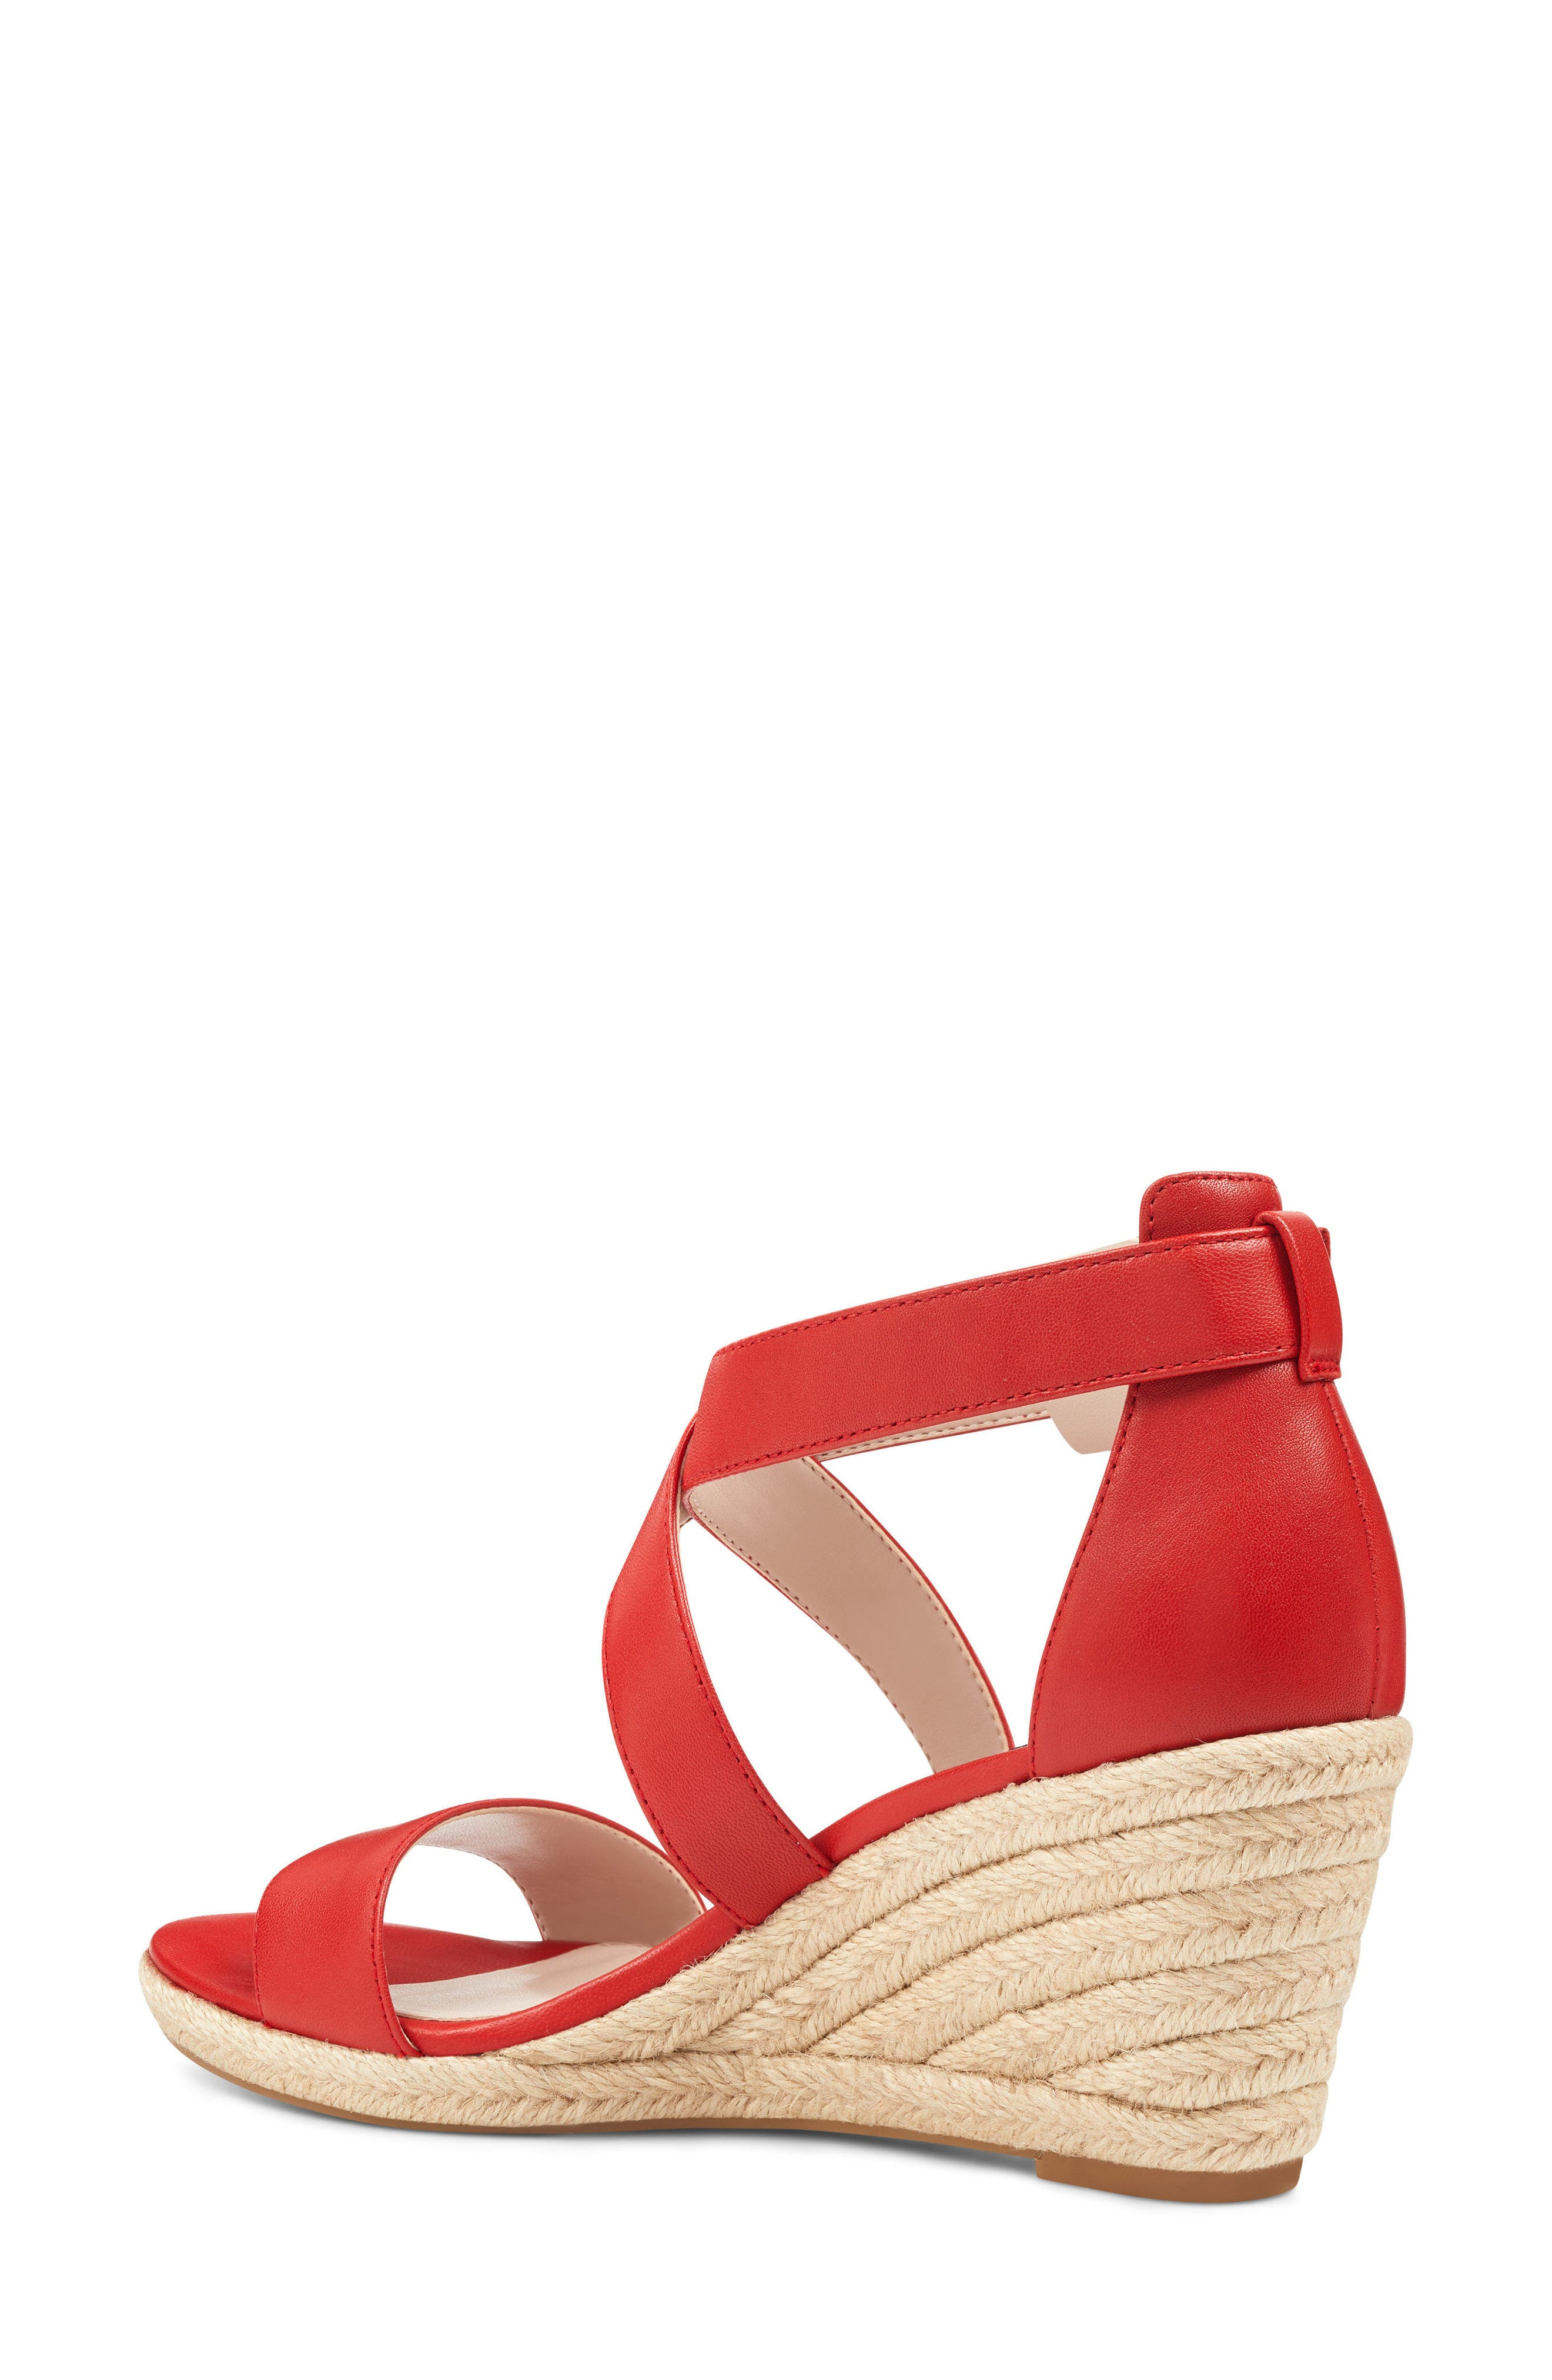 Jorjapeach Espadrille Wedge Sandal,                             Alternate thumbnail 2, color,                             RED LEATHER